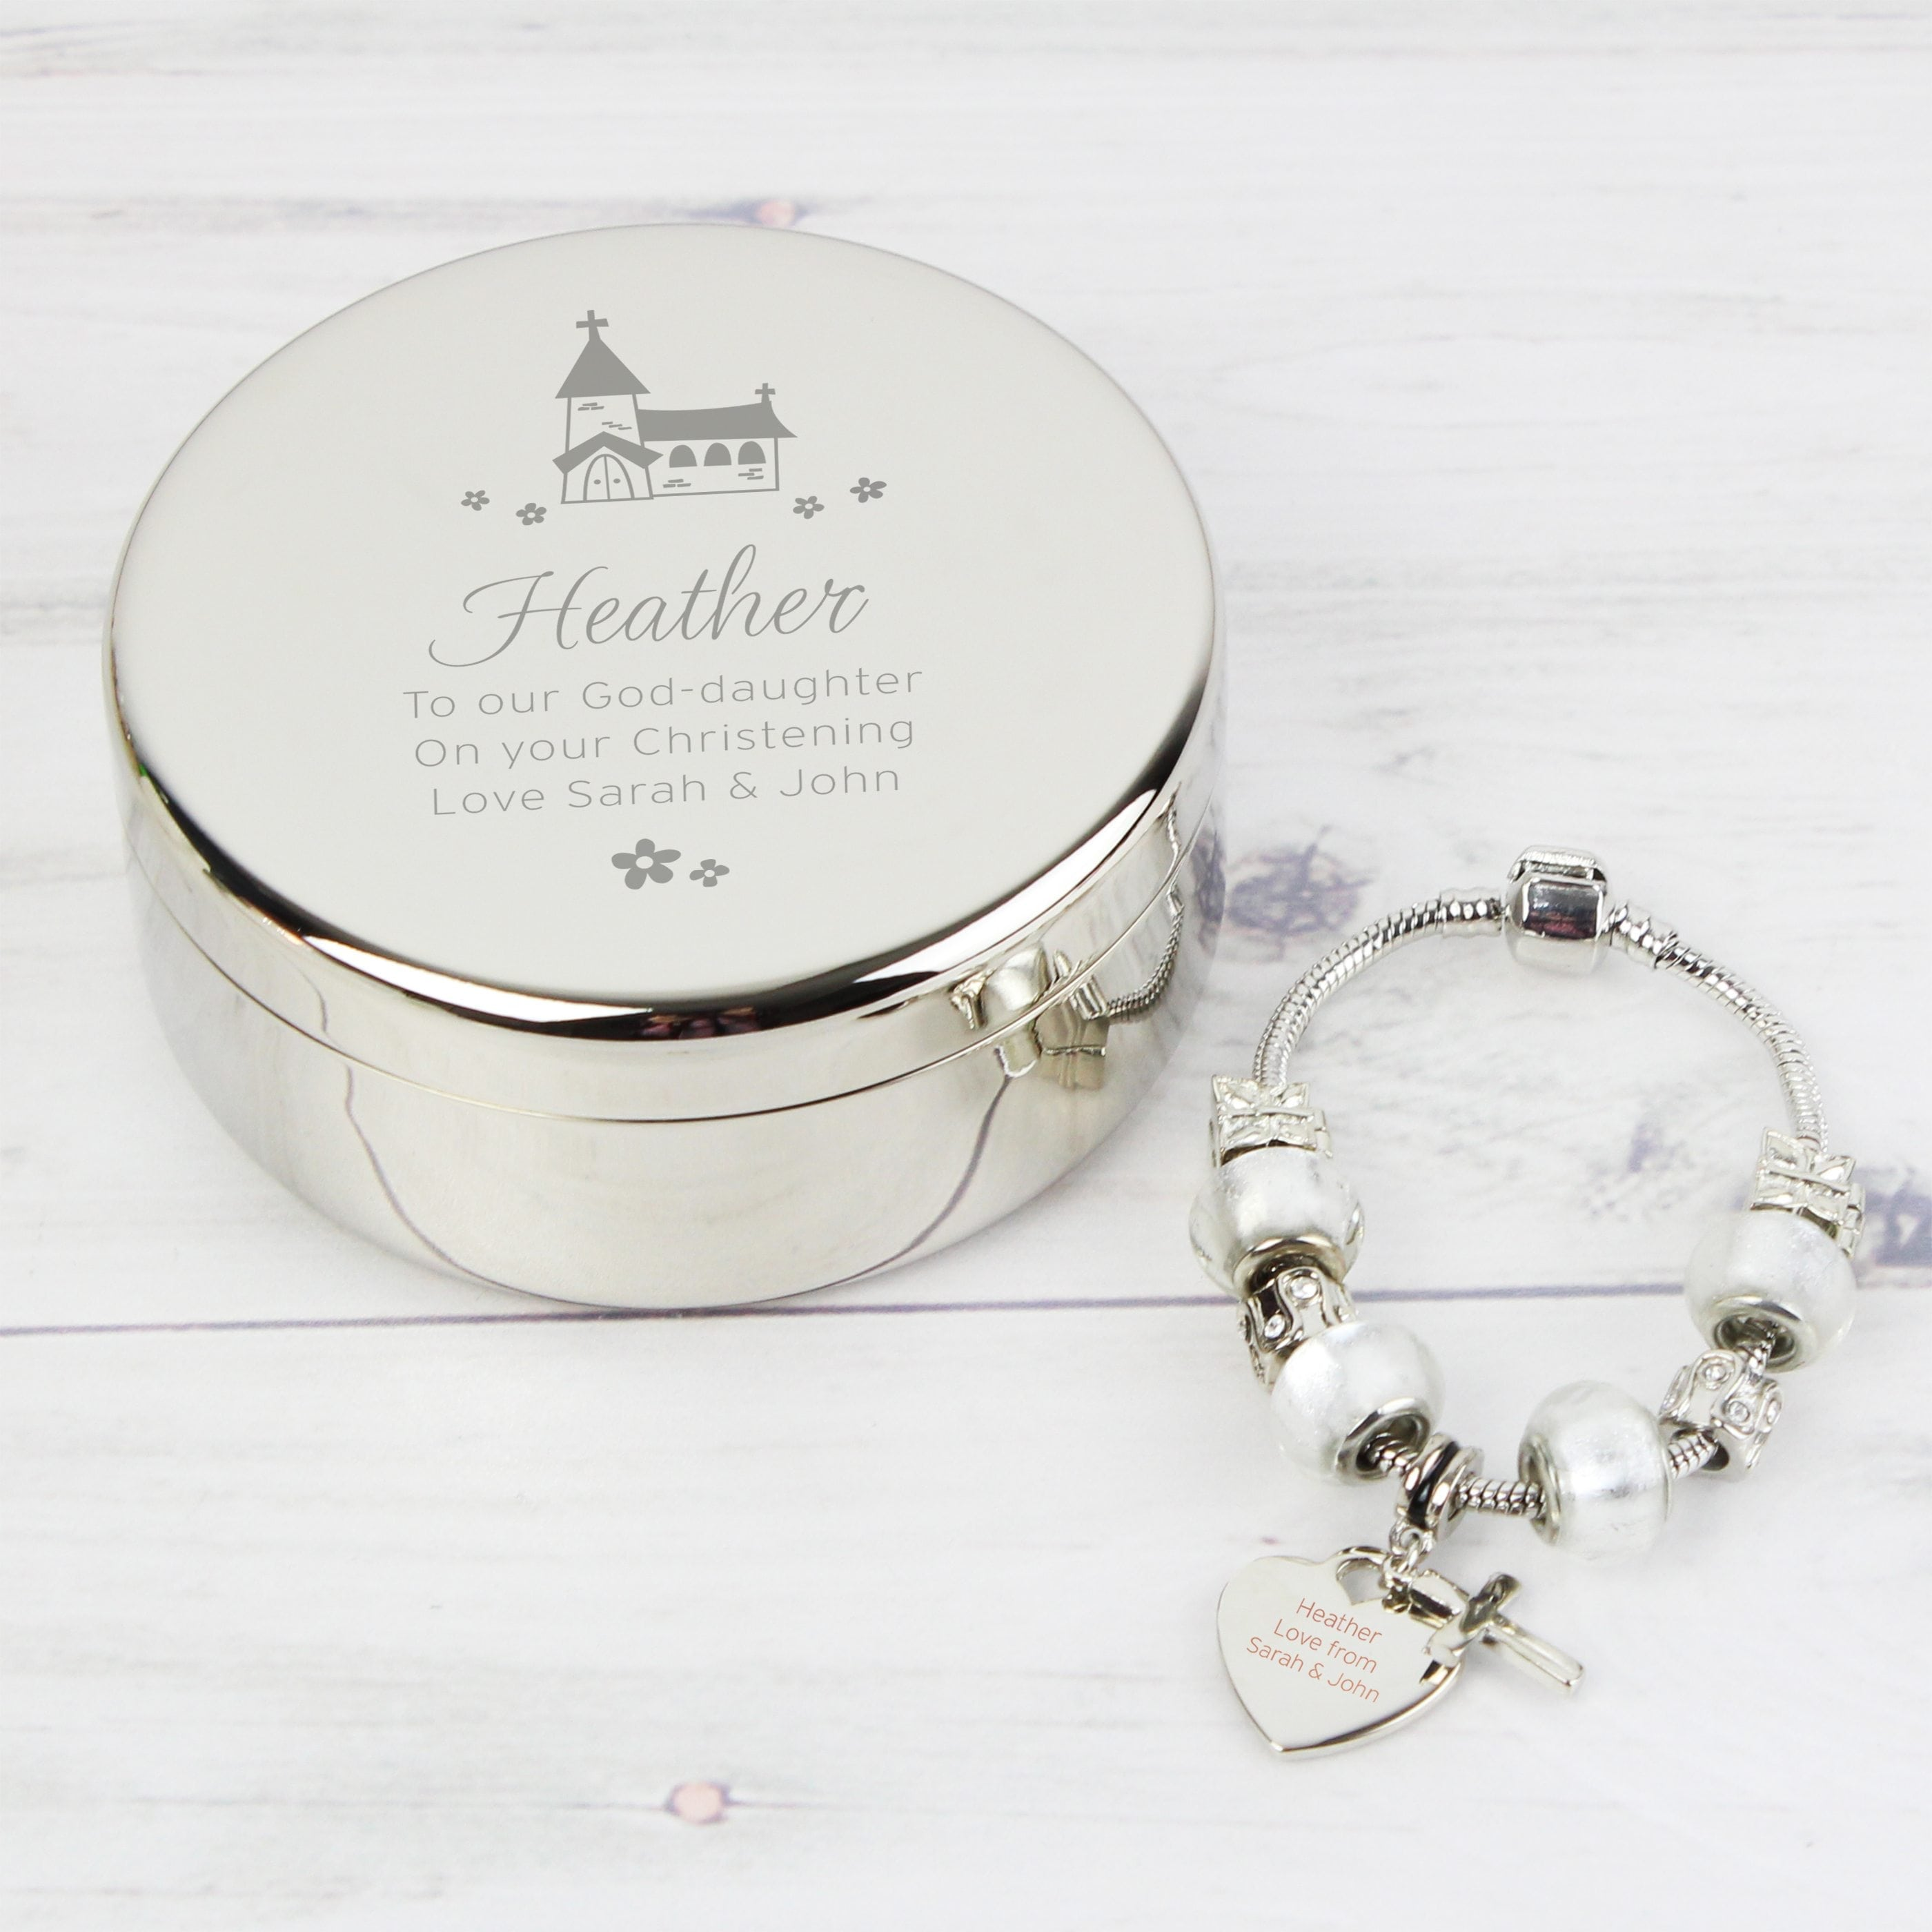 trinket whimsical bracelet church personalised charm ice product white cross round box